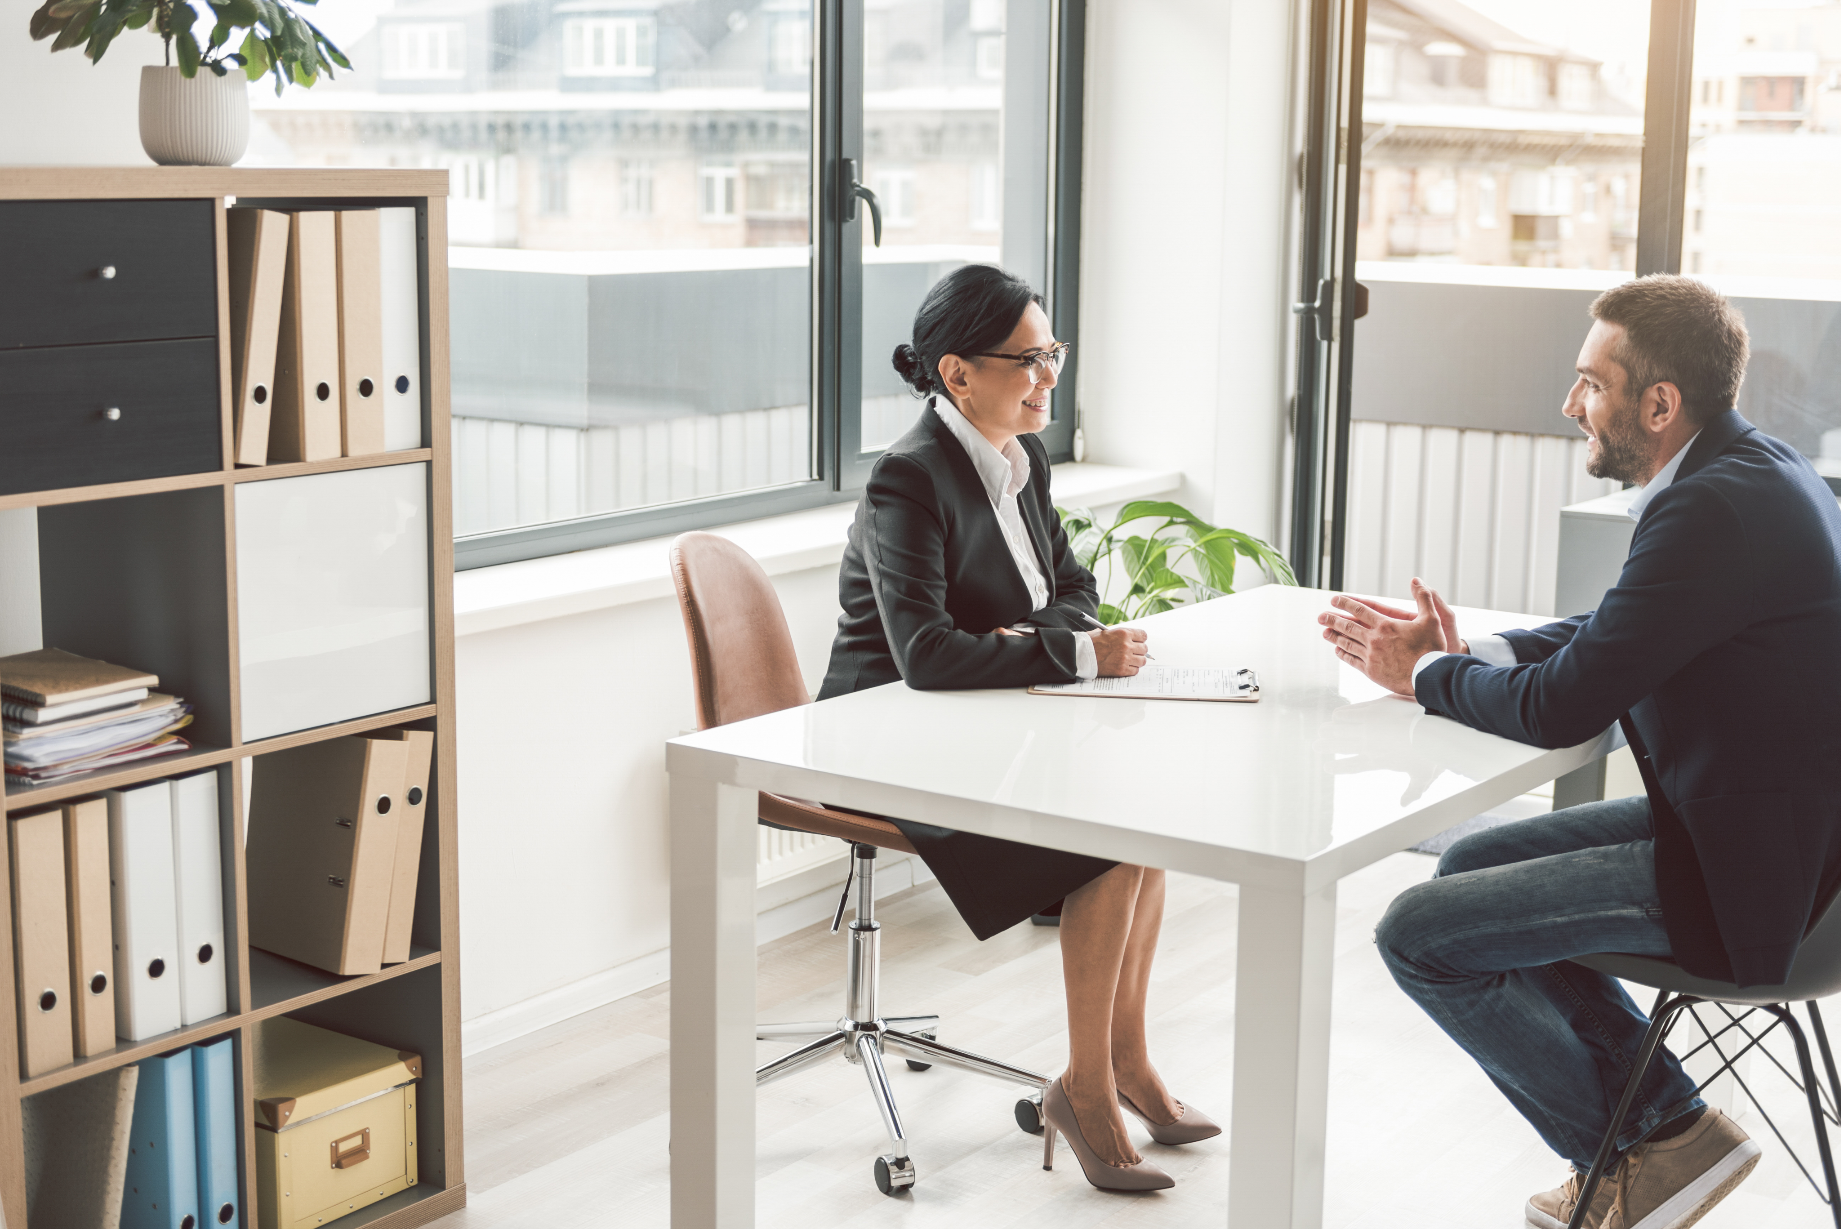 Female boss and male employee chat at desk